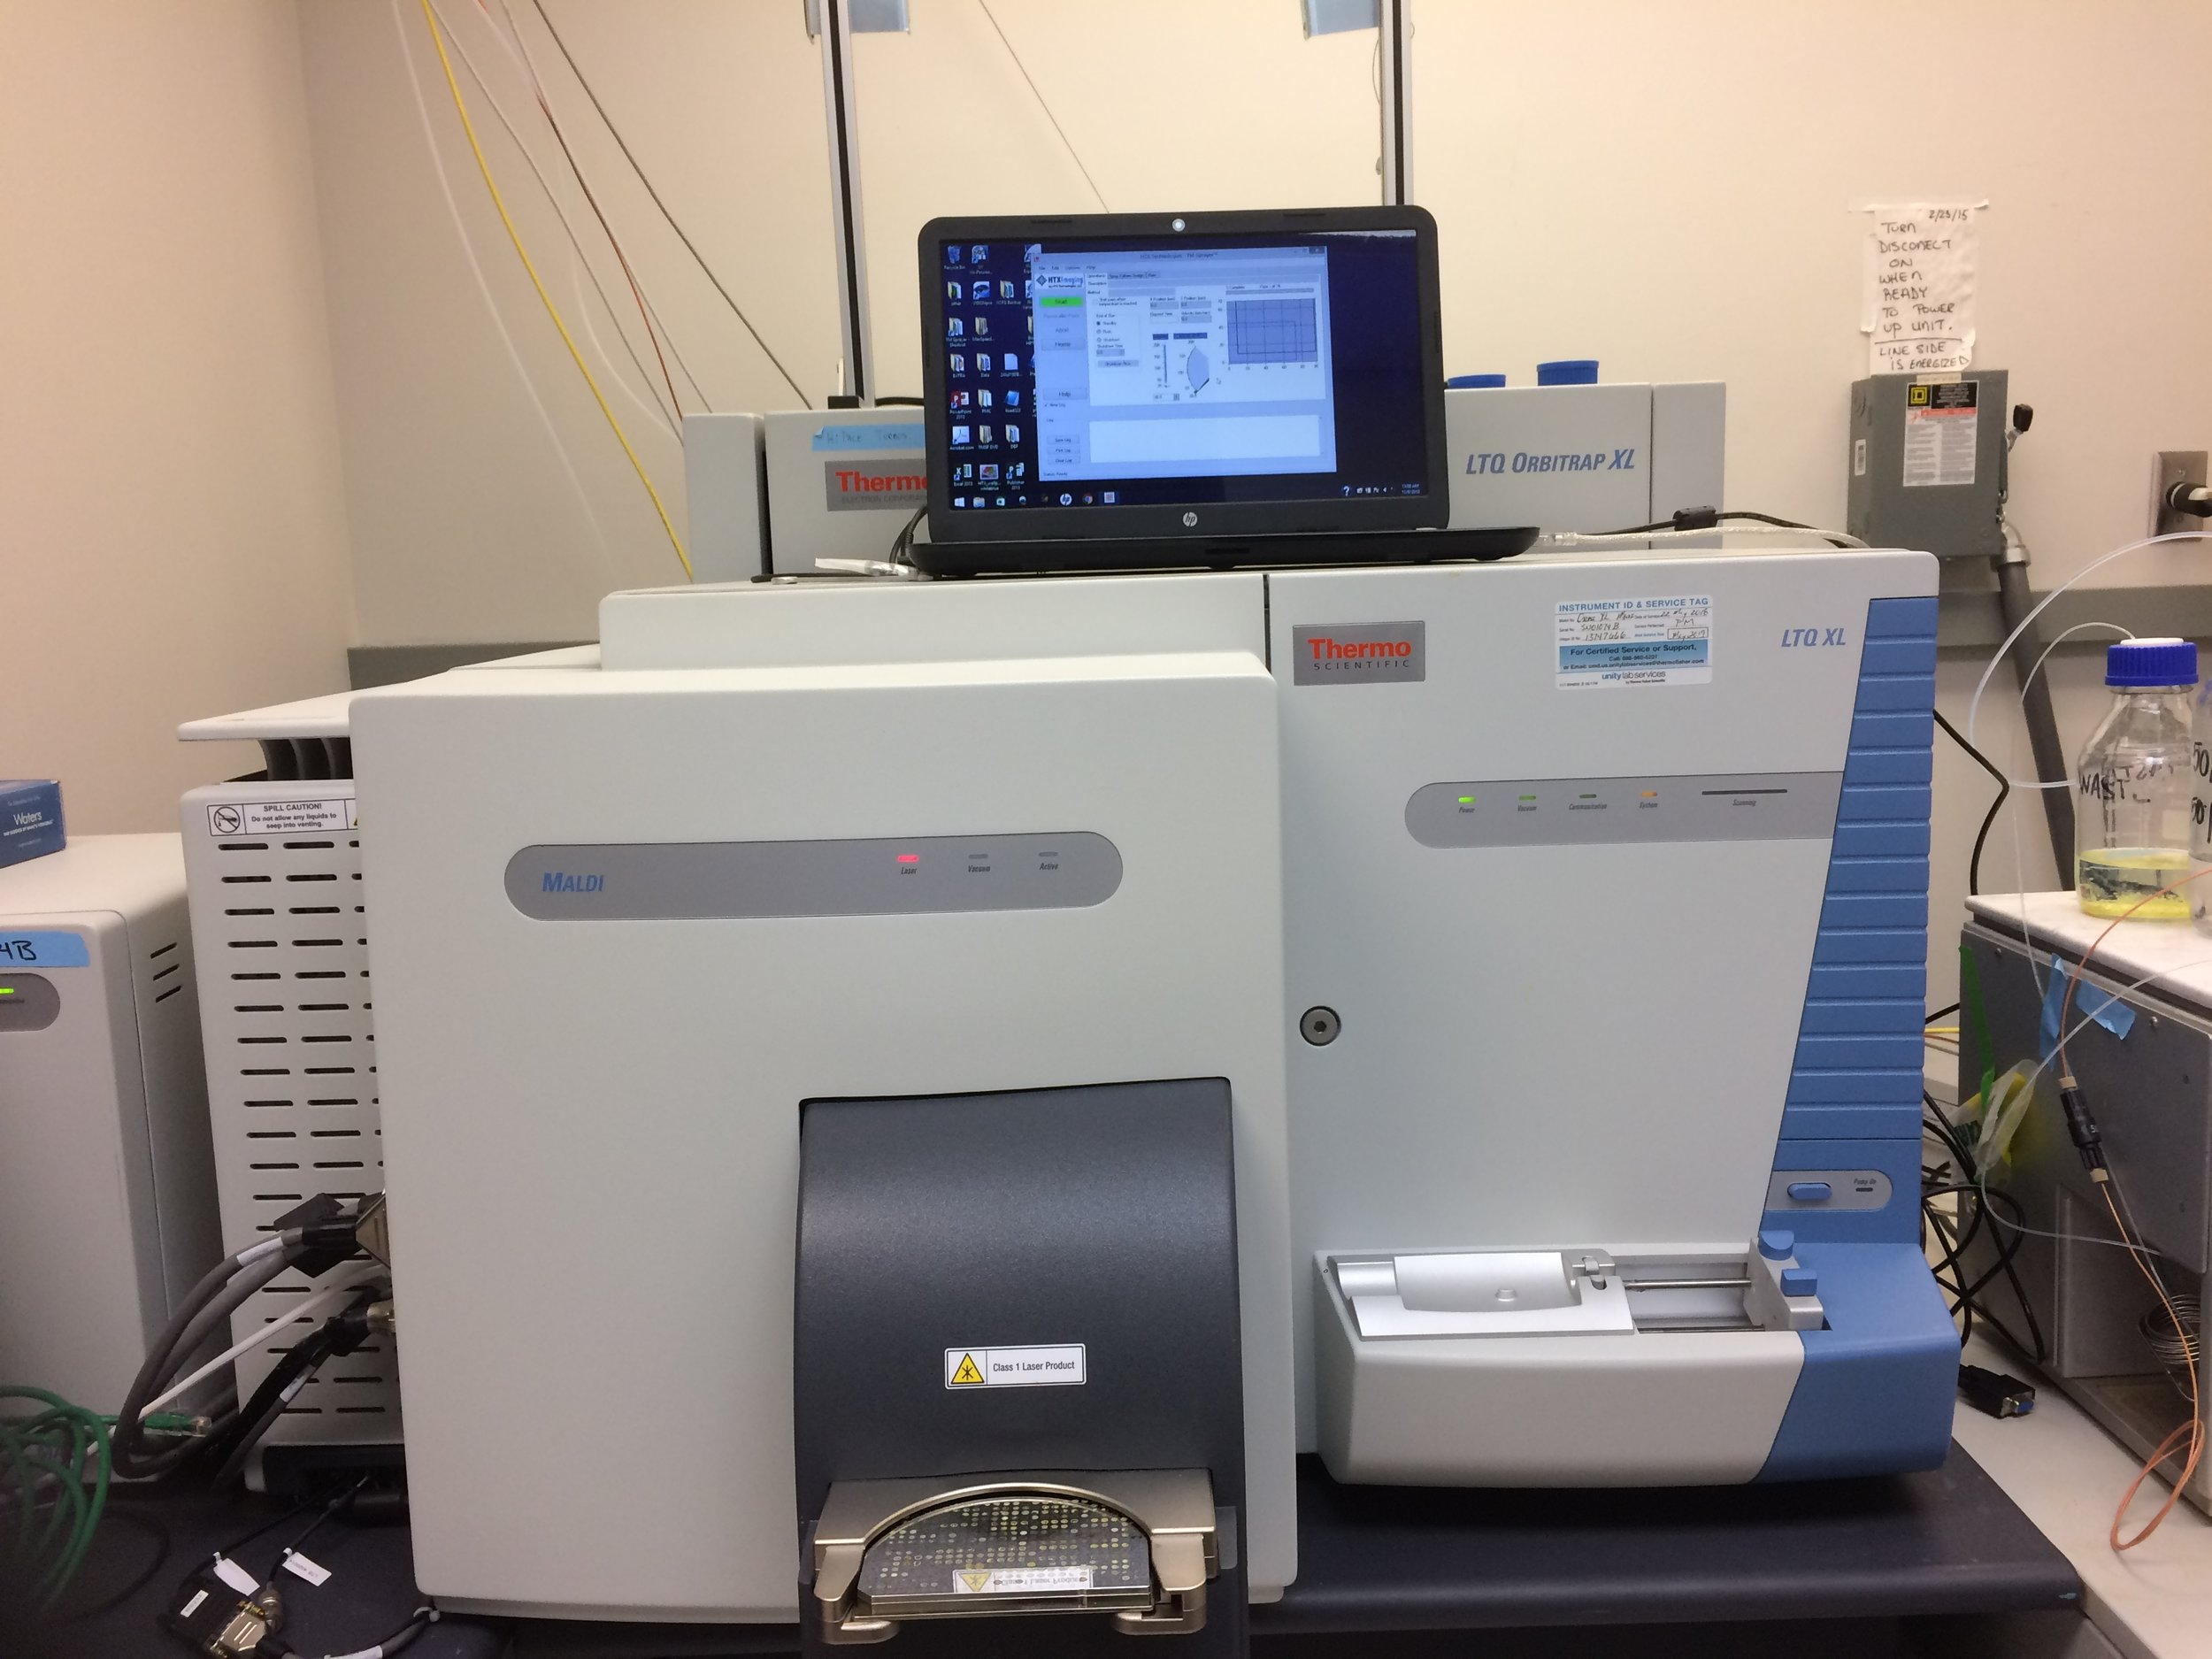 Figure 2.  LTQ Orbitrap XLTM Hybrid Ion Trap Orbitrap Mass Spectrometer (ThermoFisher ScientificTM) in the lab of Dr. Namandje N. Bumpus at Johns Hopkins University School of Medicine.